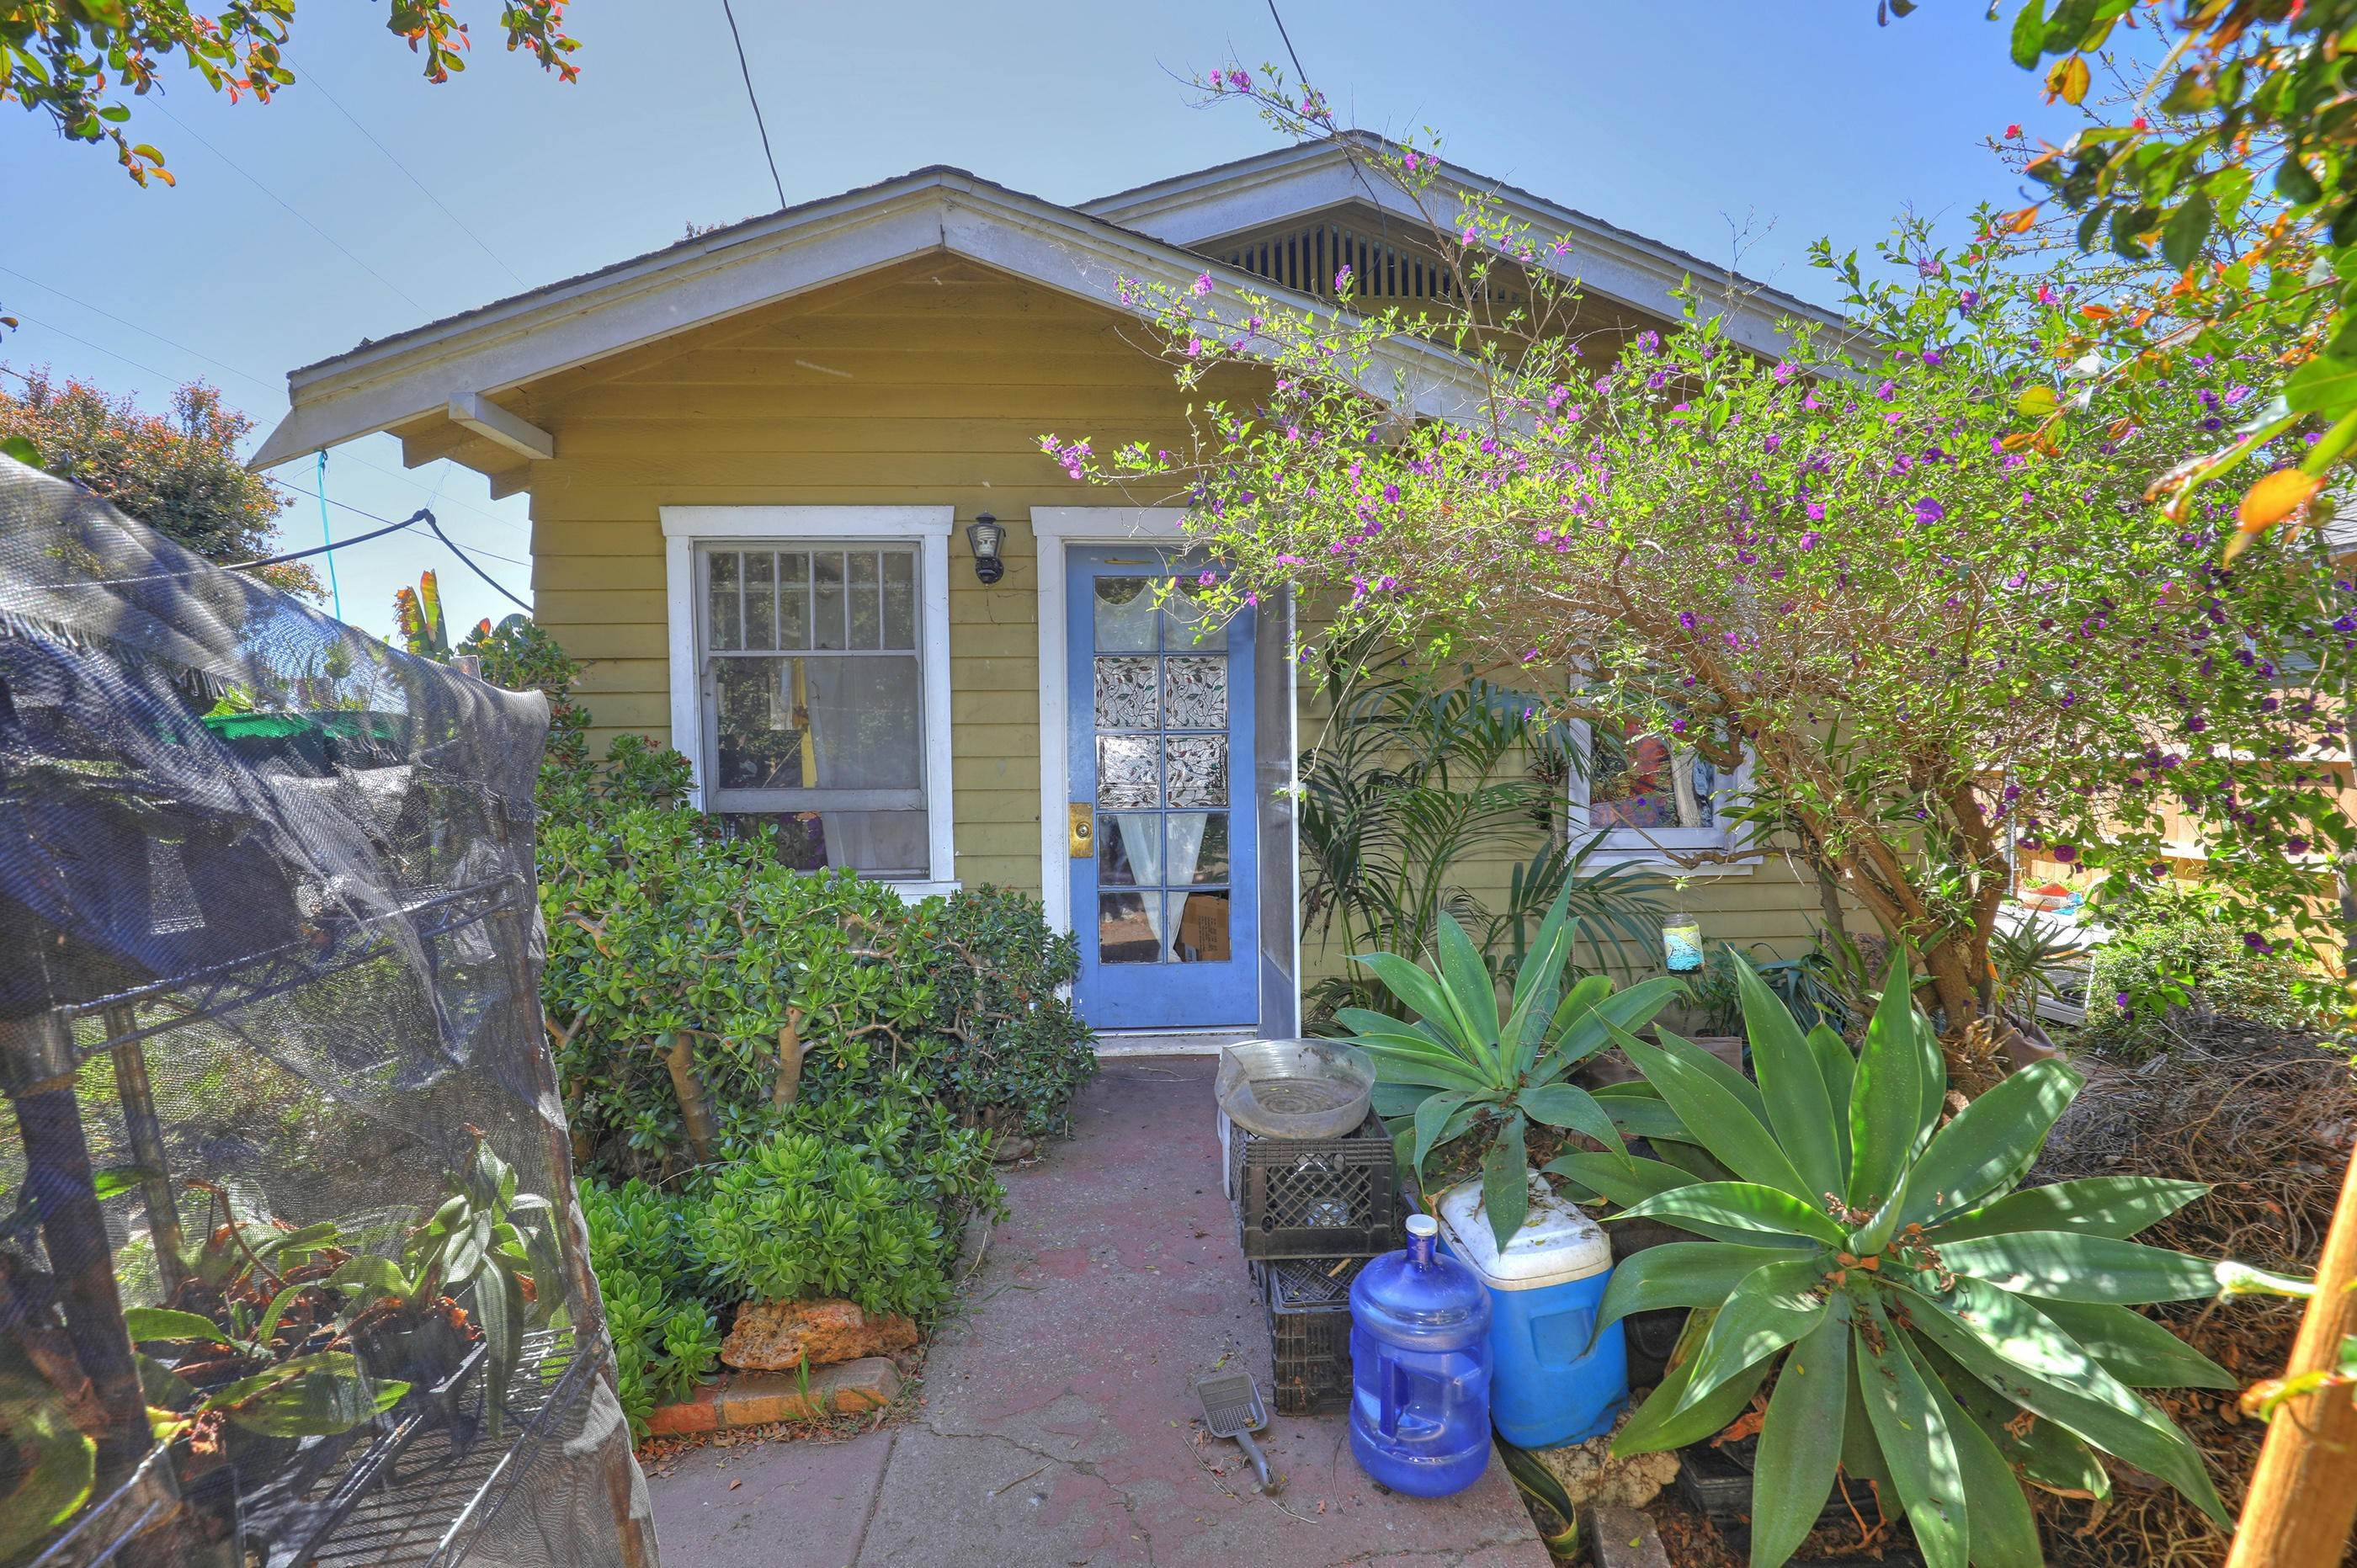 21. Estate for Sale at 515 W. Anapamu Street Santa Barbara, California 93101 United States